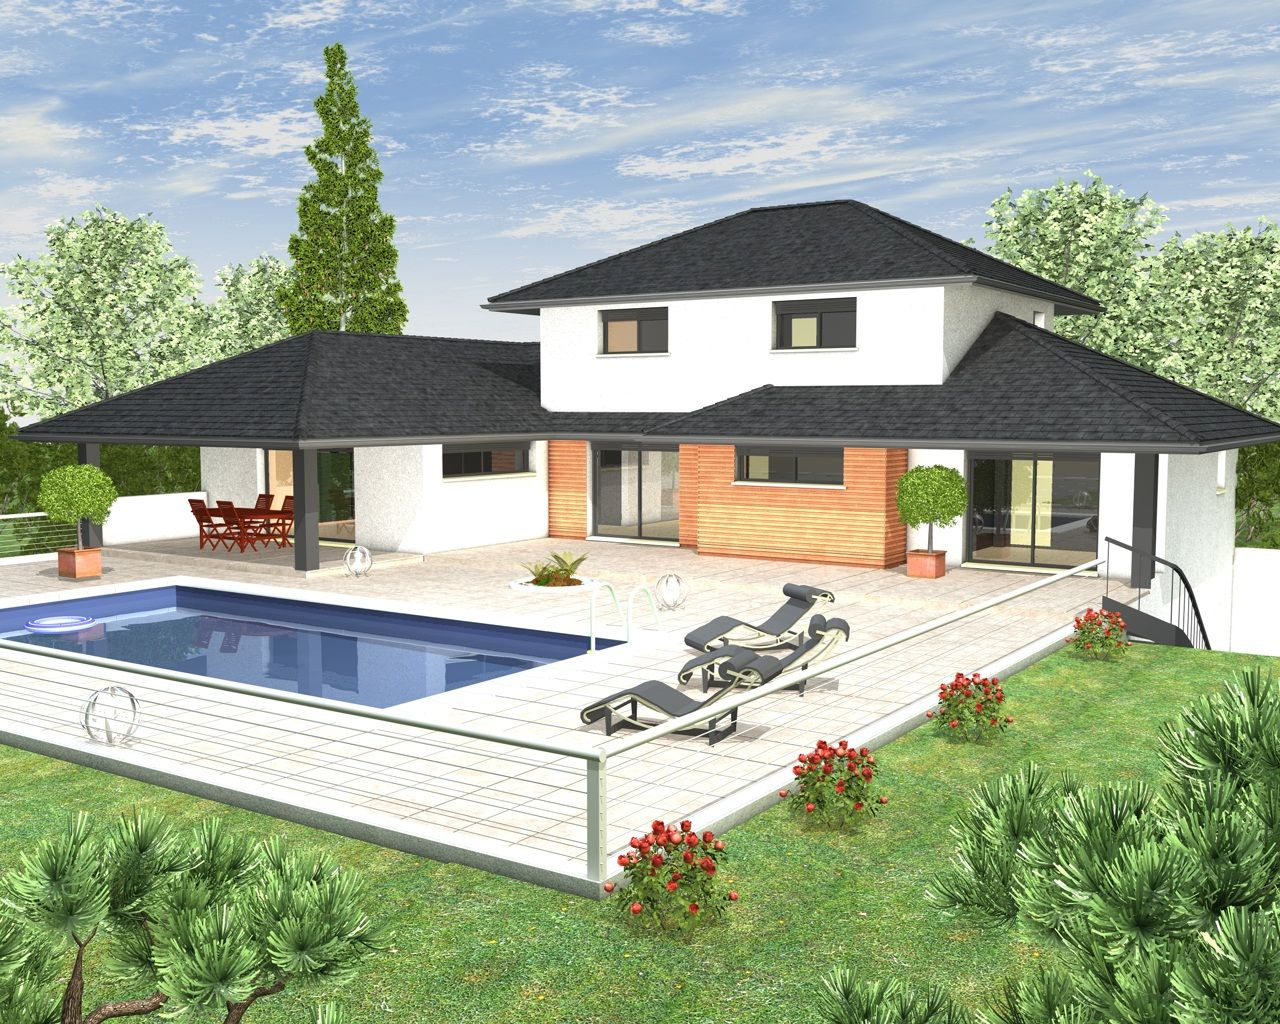 Mod les et plans de maisons mod le tage inspiration for Plan de maison contemporaine a etage